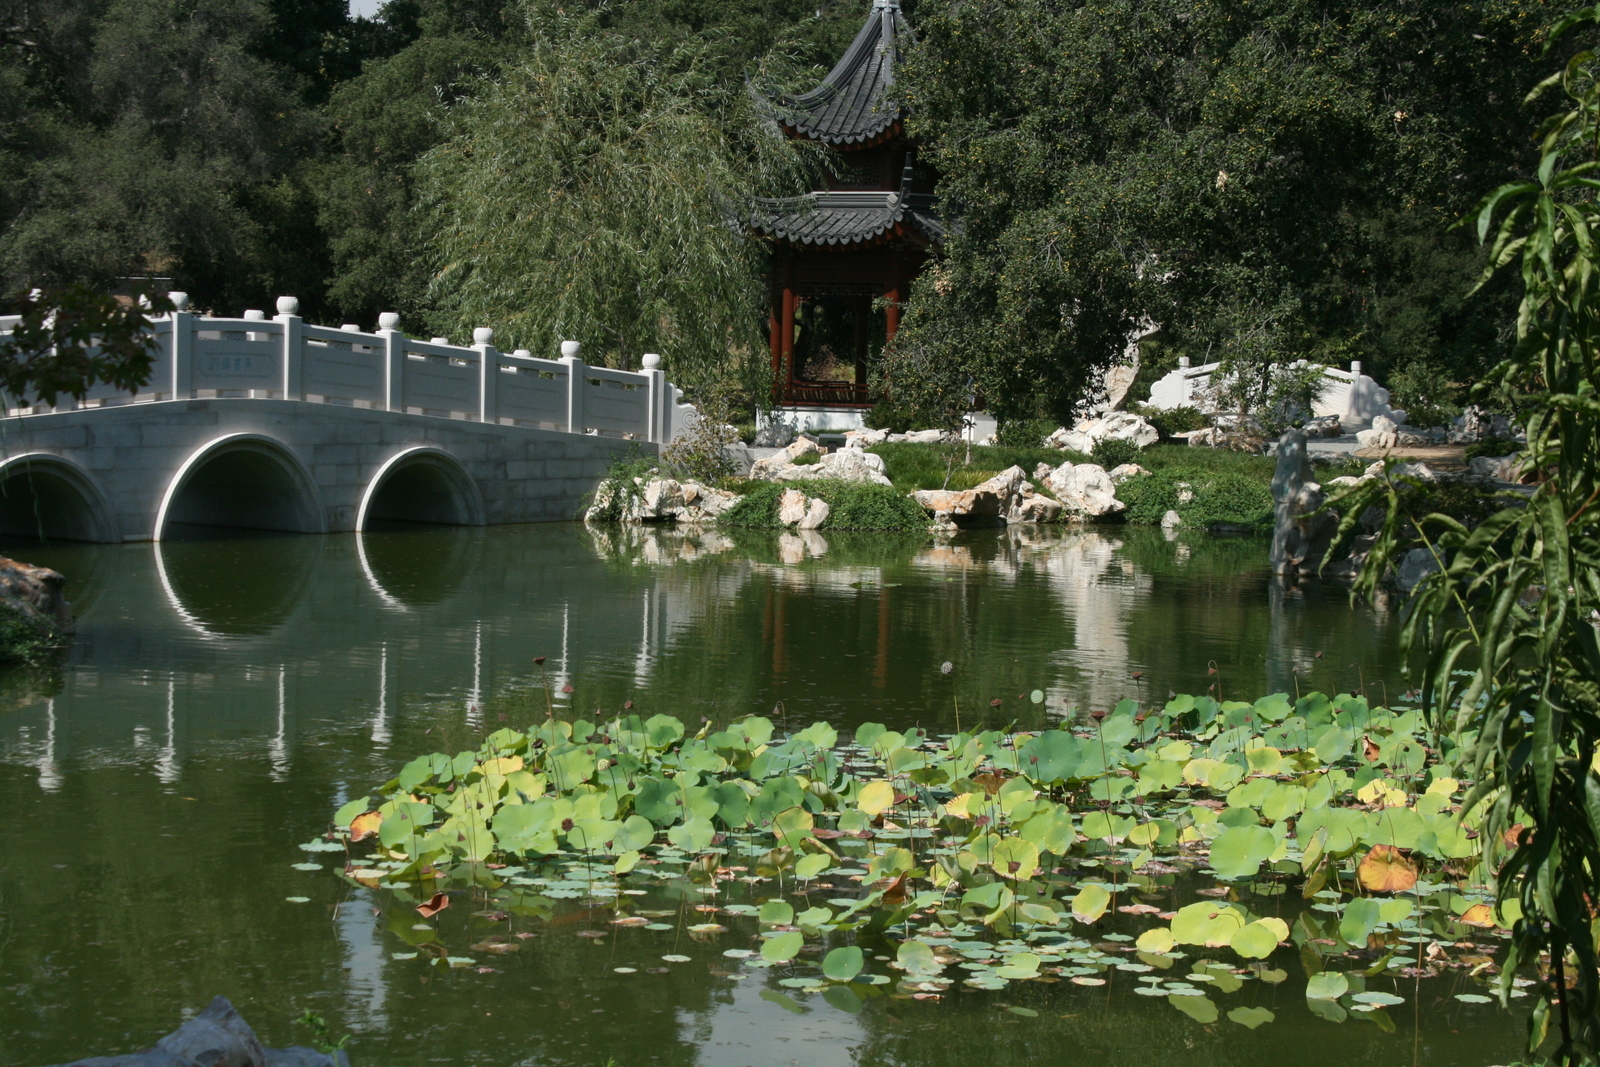 The Huntington Library And Botanical Gardens Was Originally The Private  Home Of Central Pacific Railroad Owner Henry E. Huntington And His Wife  Arabella.